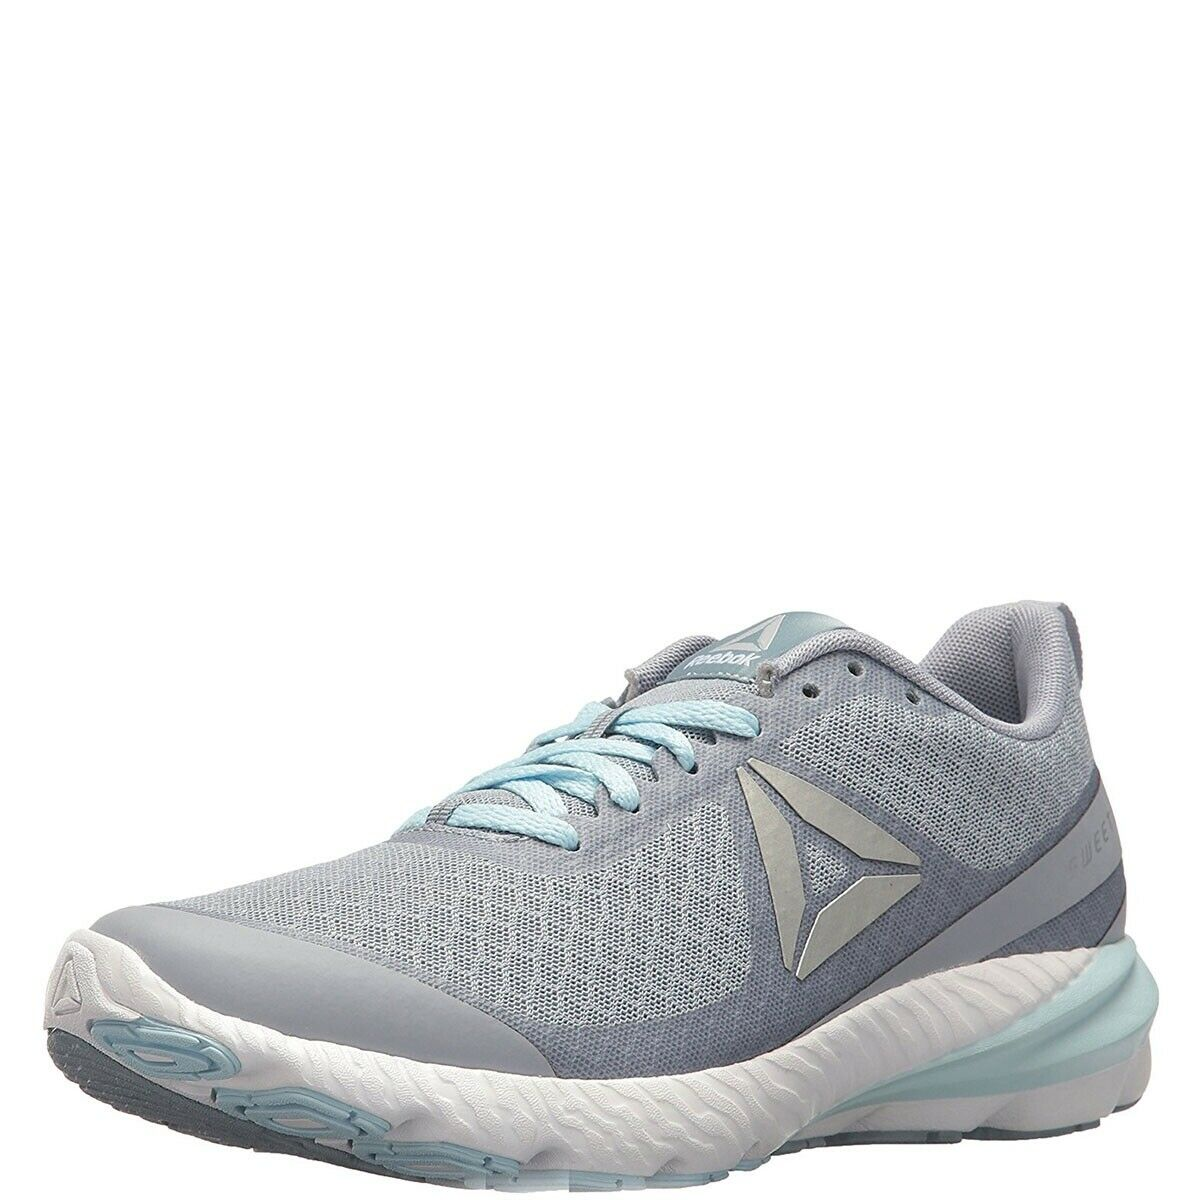 Reebok Women's Osr Sweet Road SE Track shoes